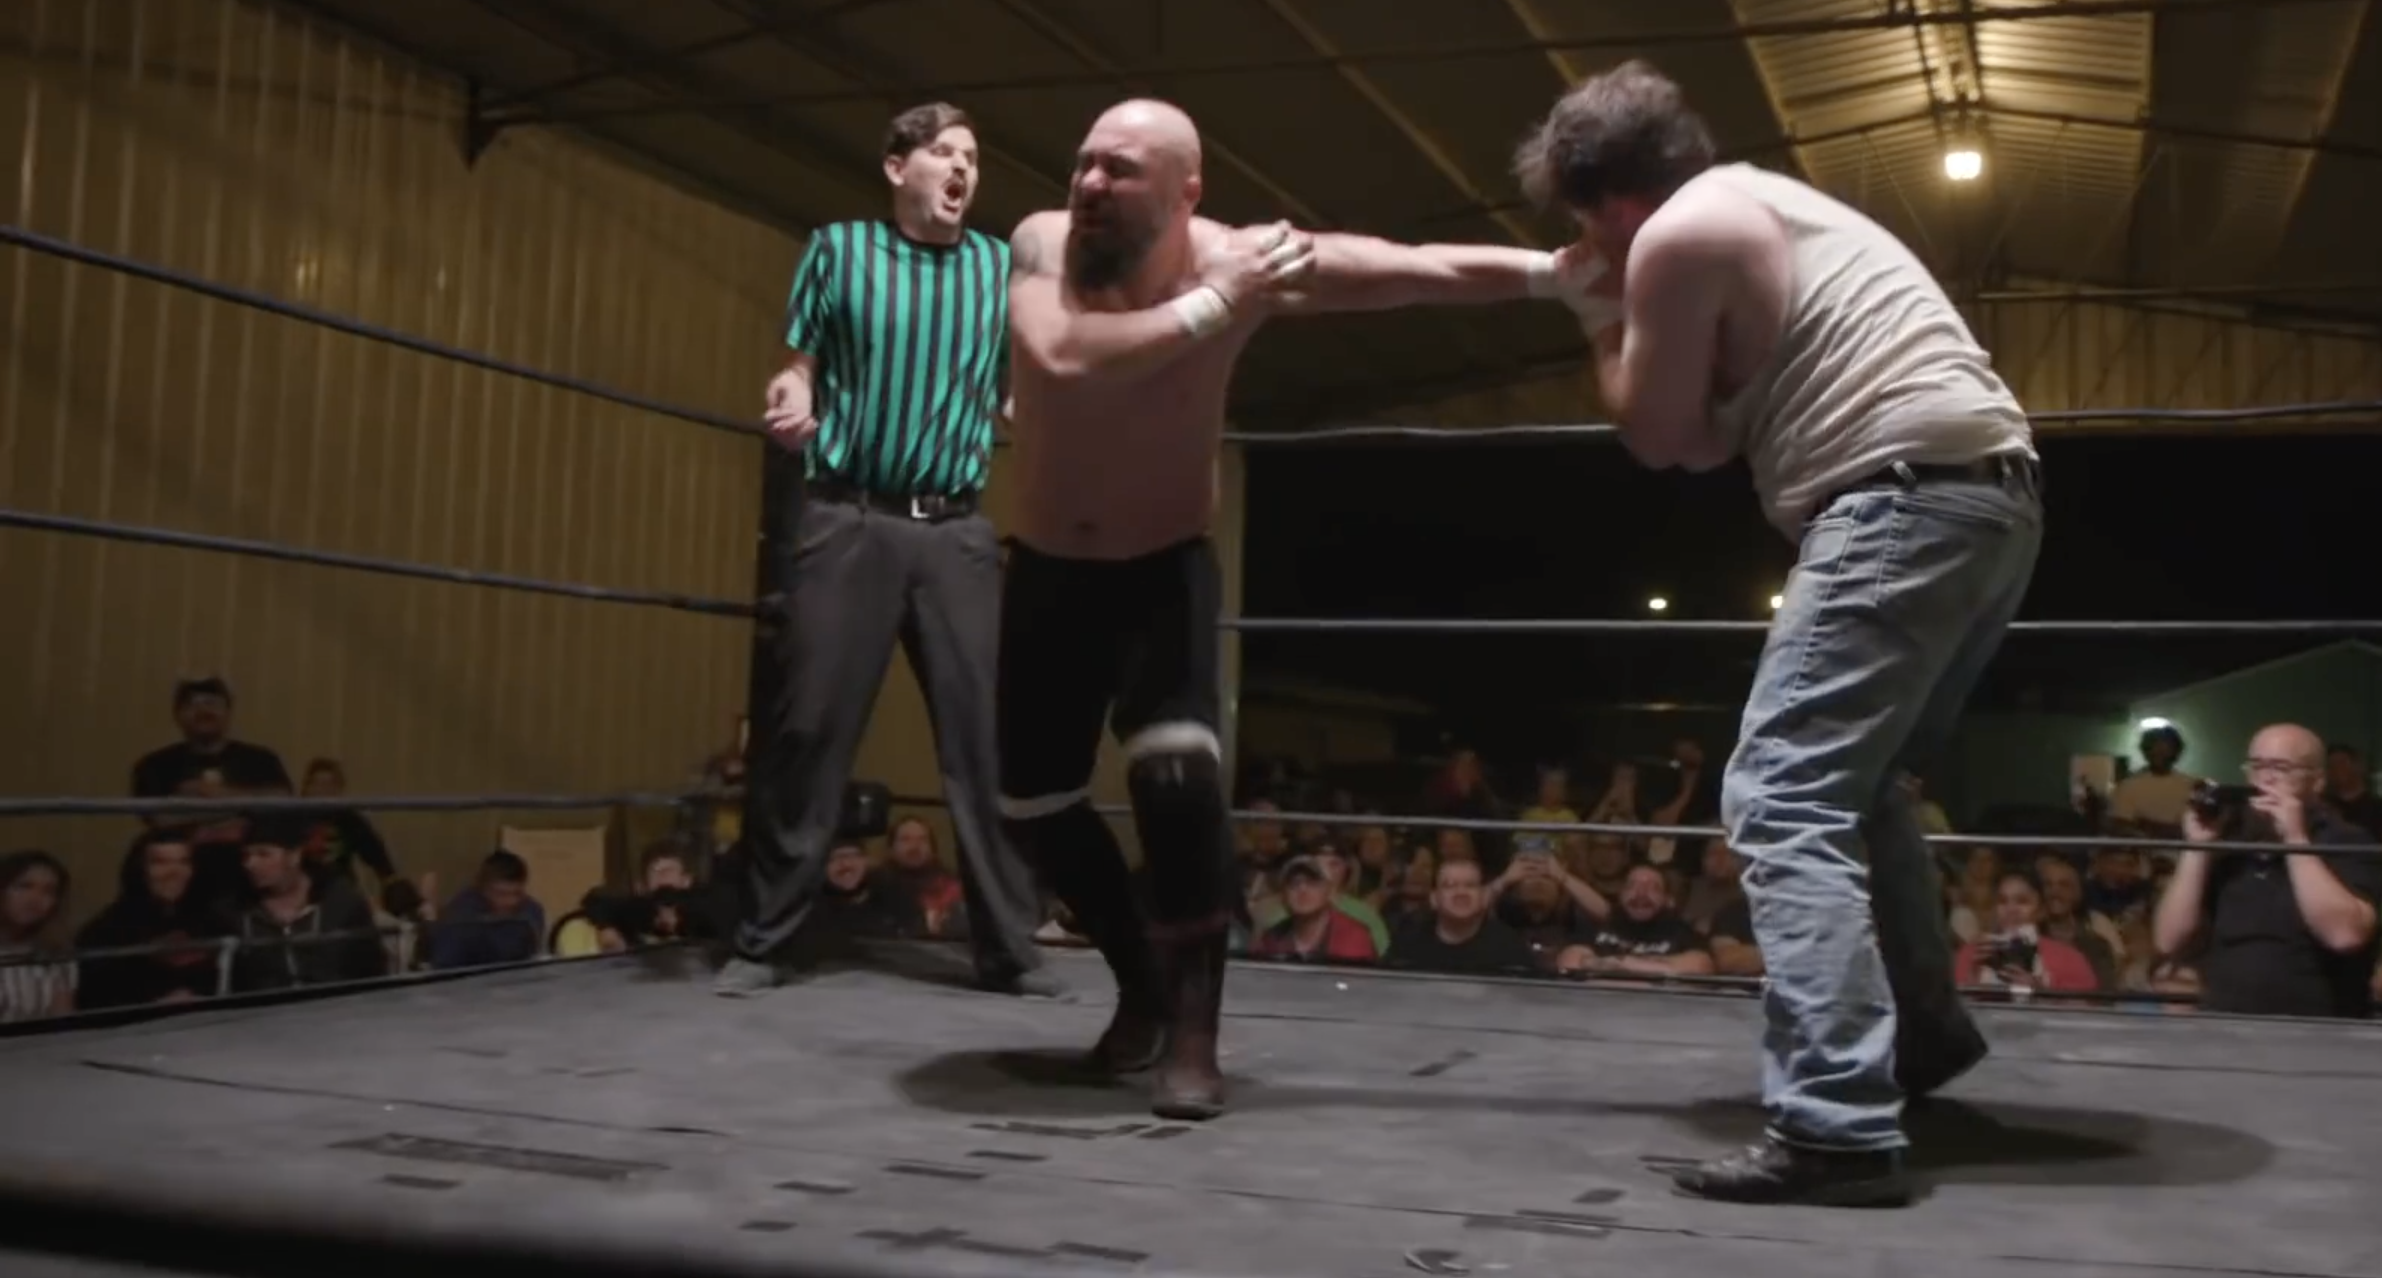 A Full Time Restaurant Manager And Part Time Wrestler, Meet 'Hobo Hank' - Digg